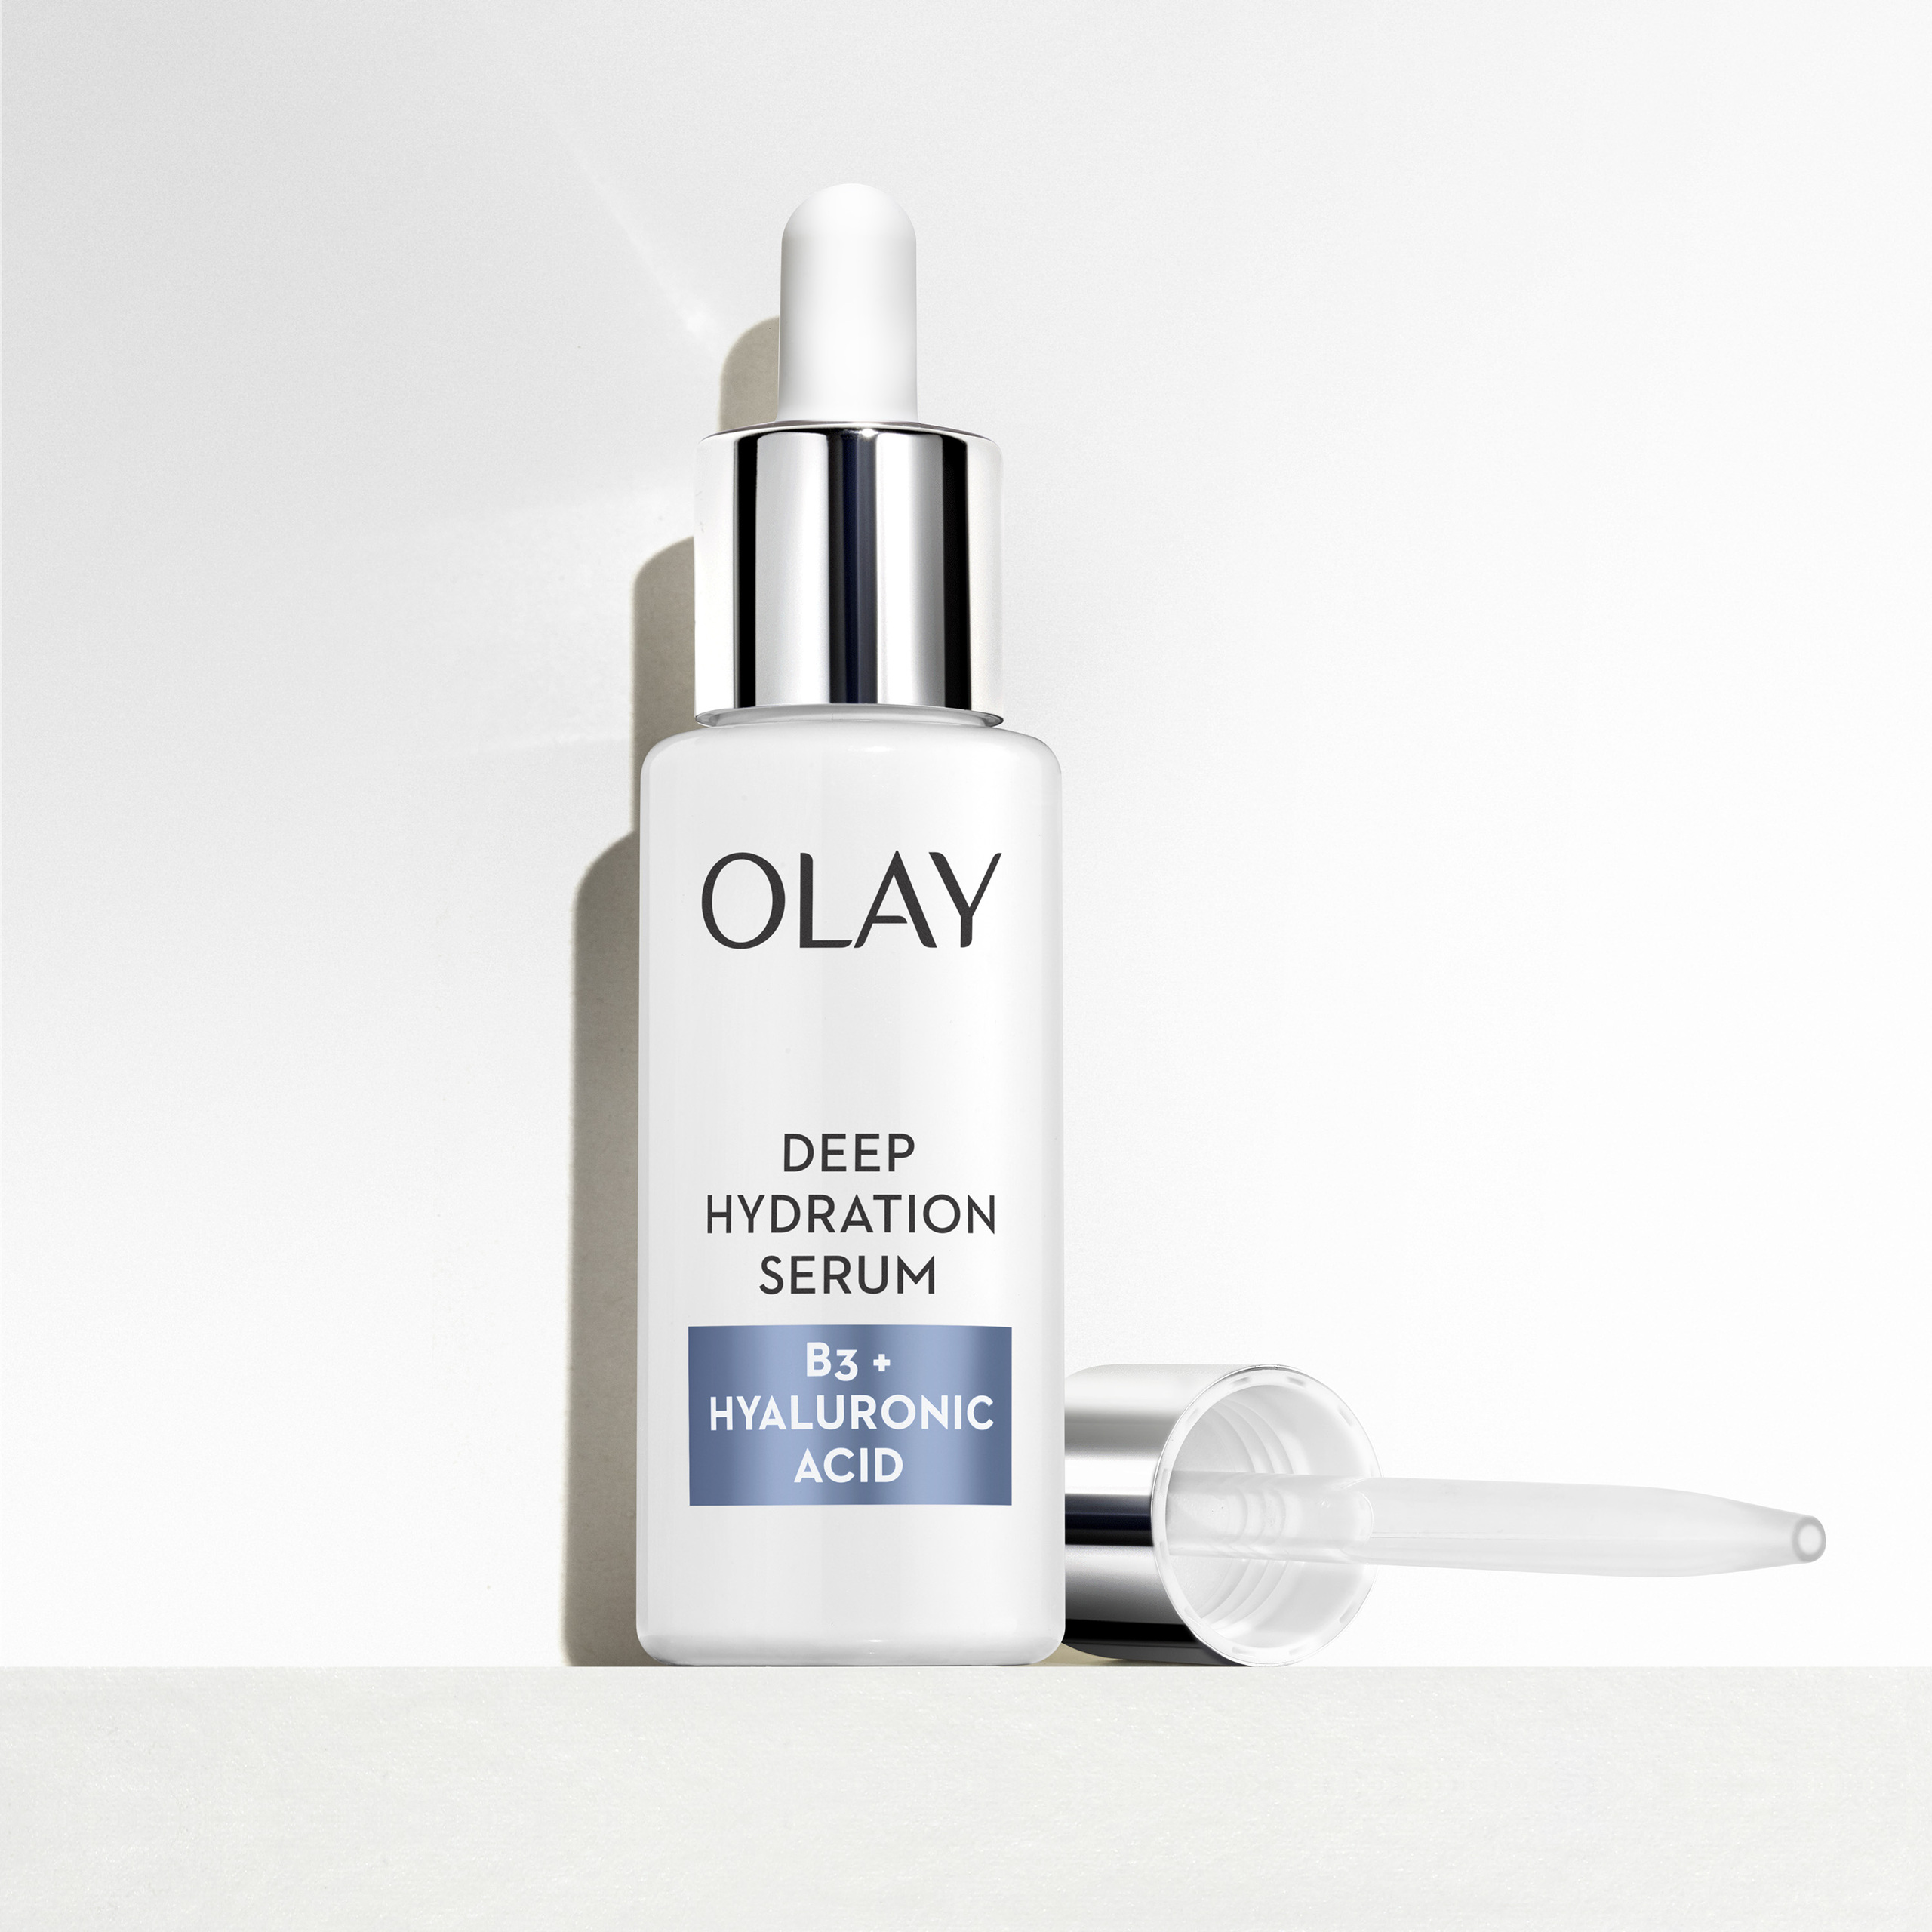 Olay - Serum Deep Hydration Vitamin B3 + Hyaluronic Acid